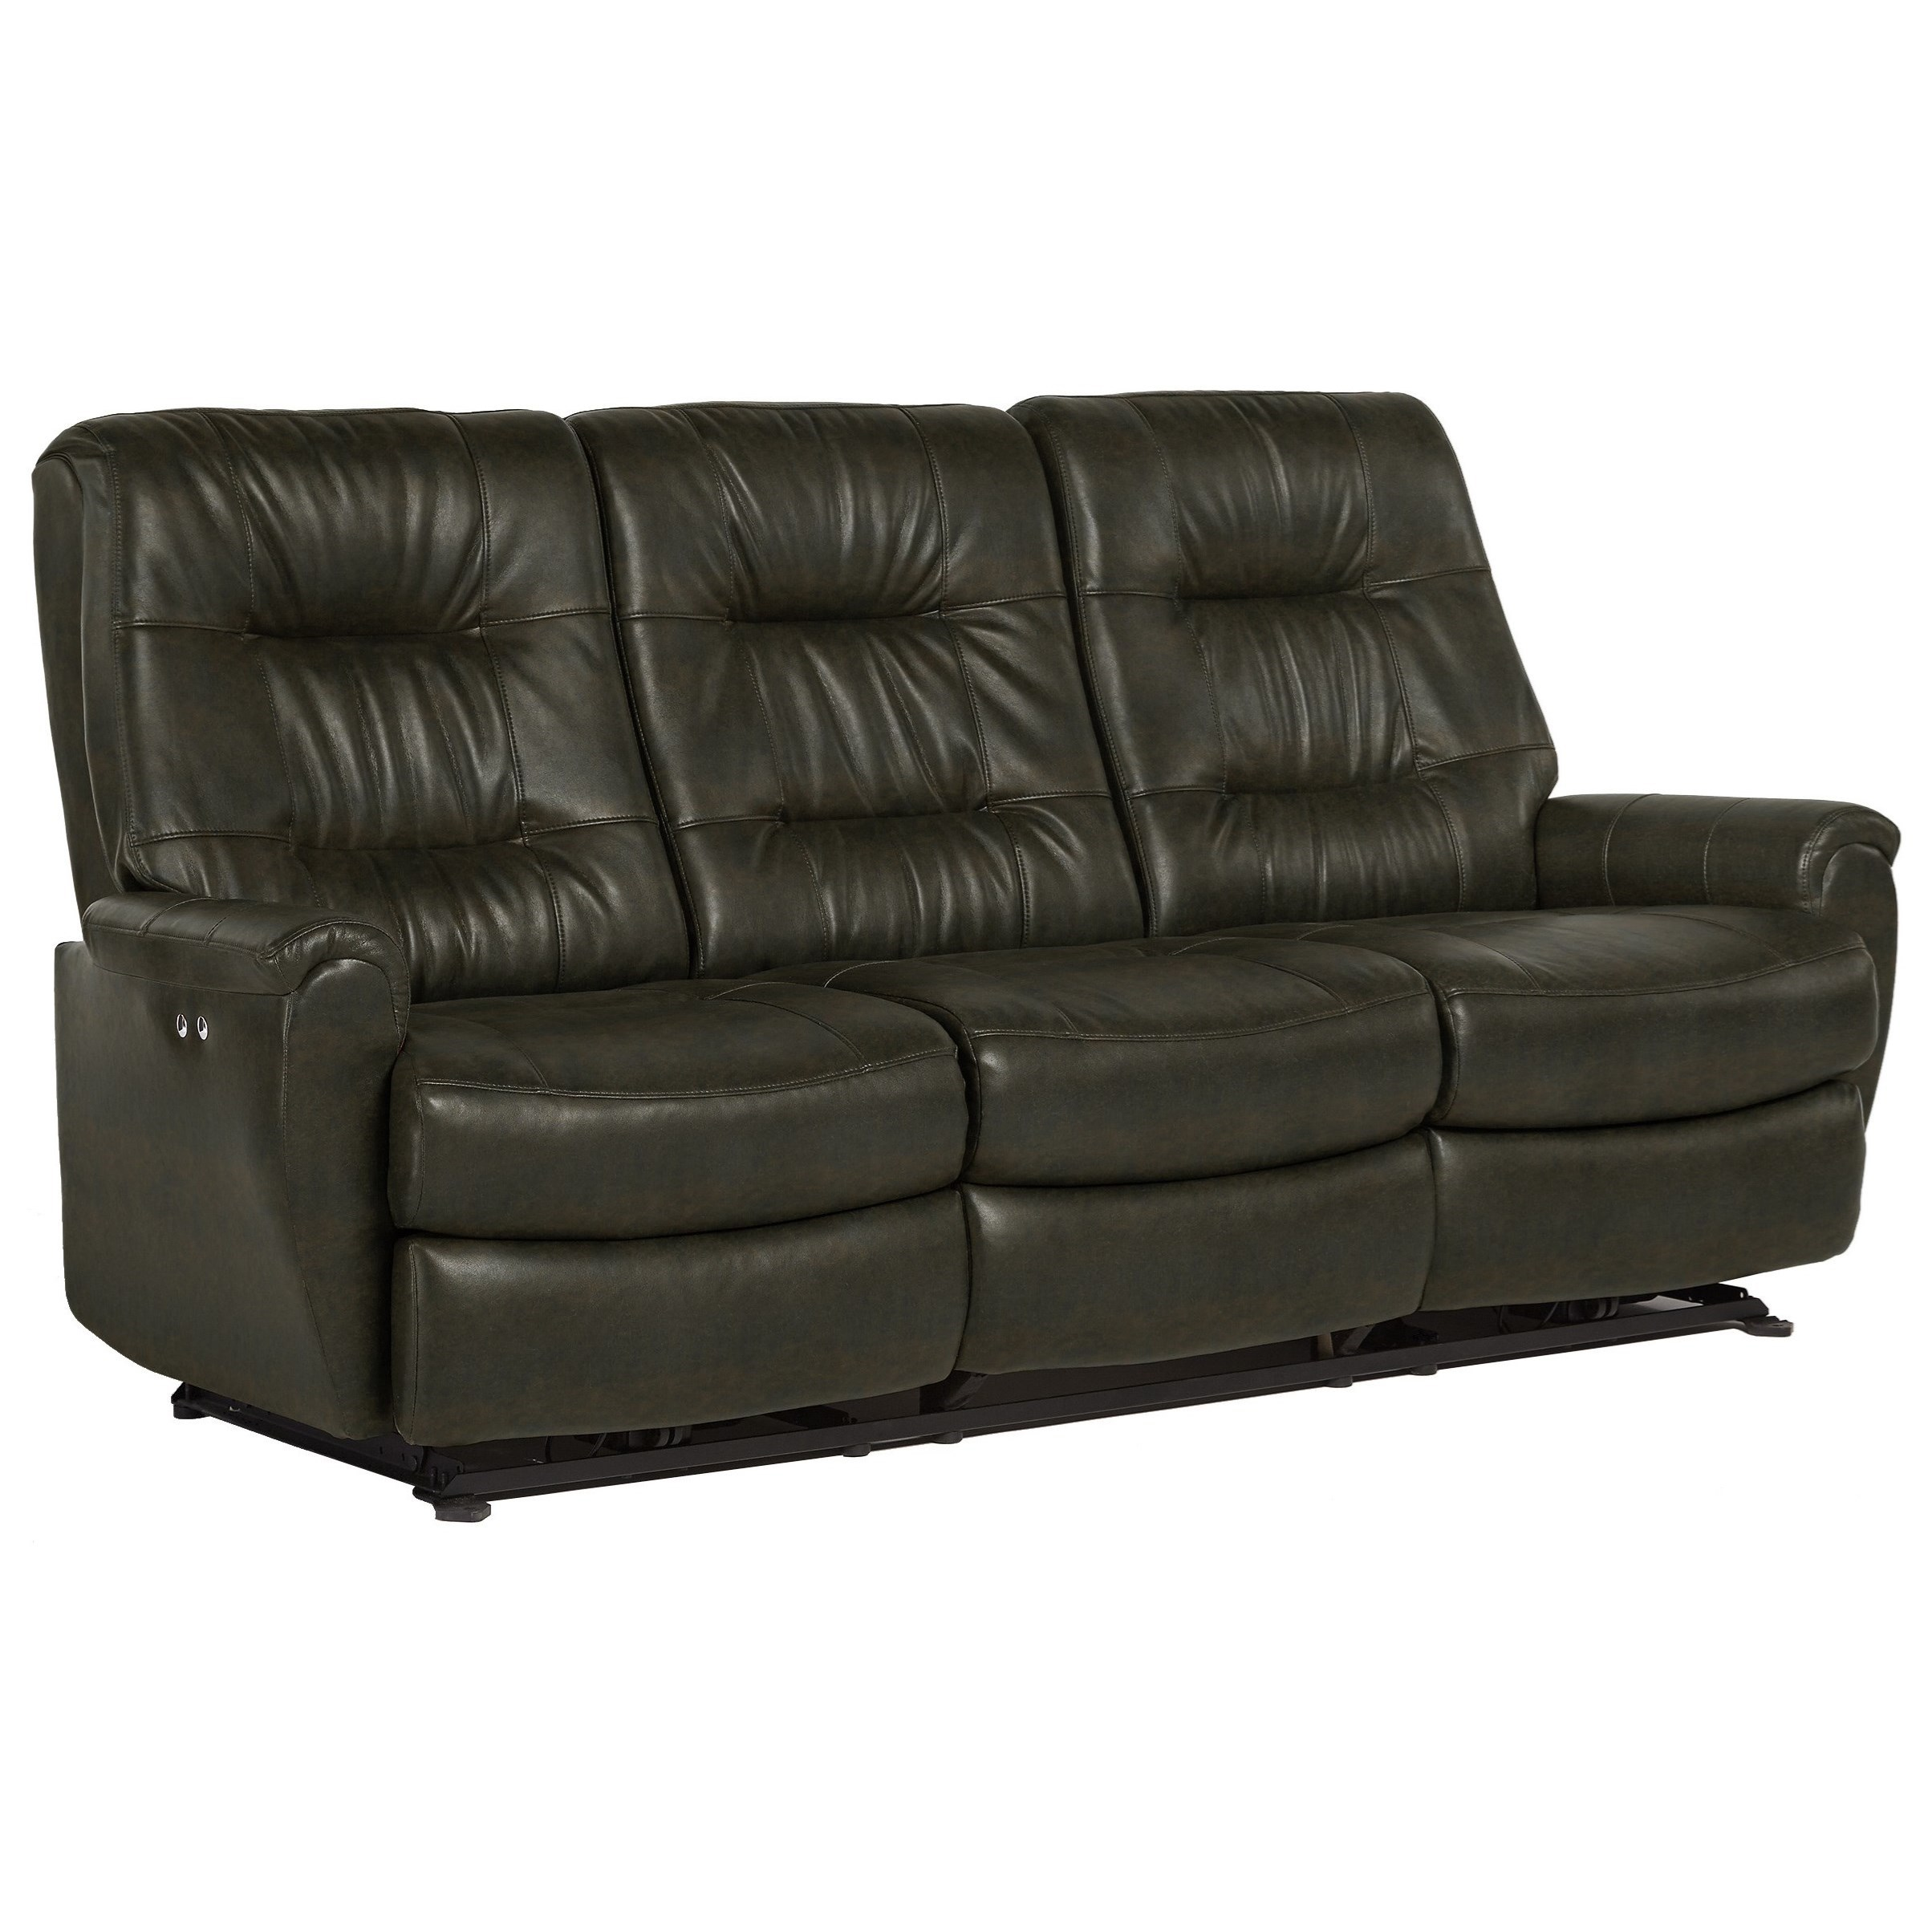 best home furnishings felicia small scale power reclining sofa with chic button tufting olinde